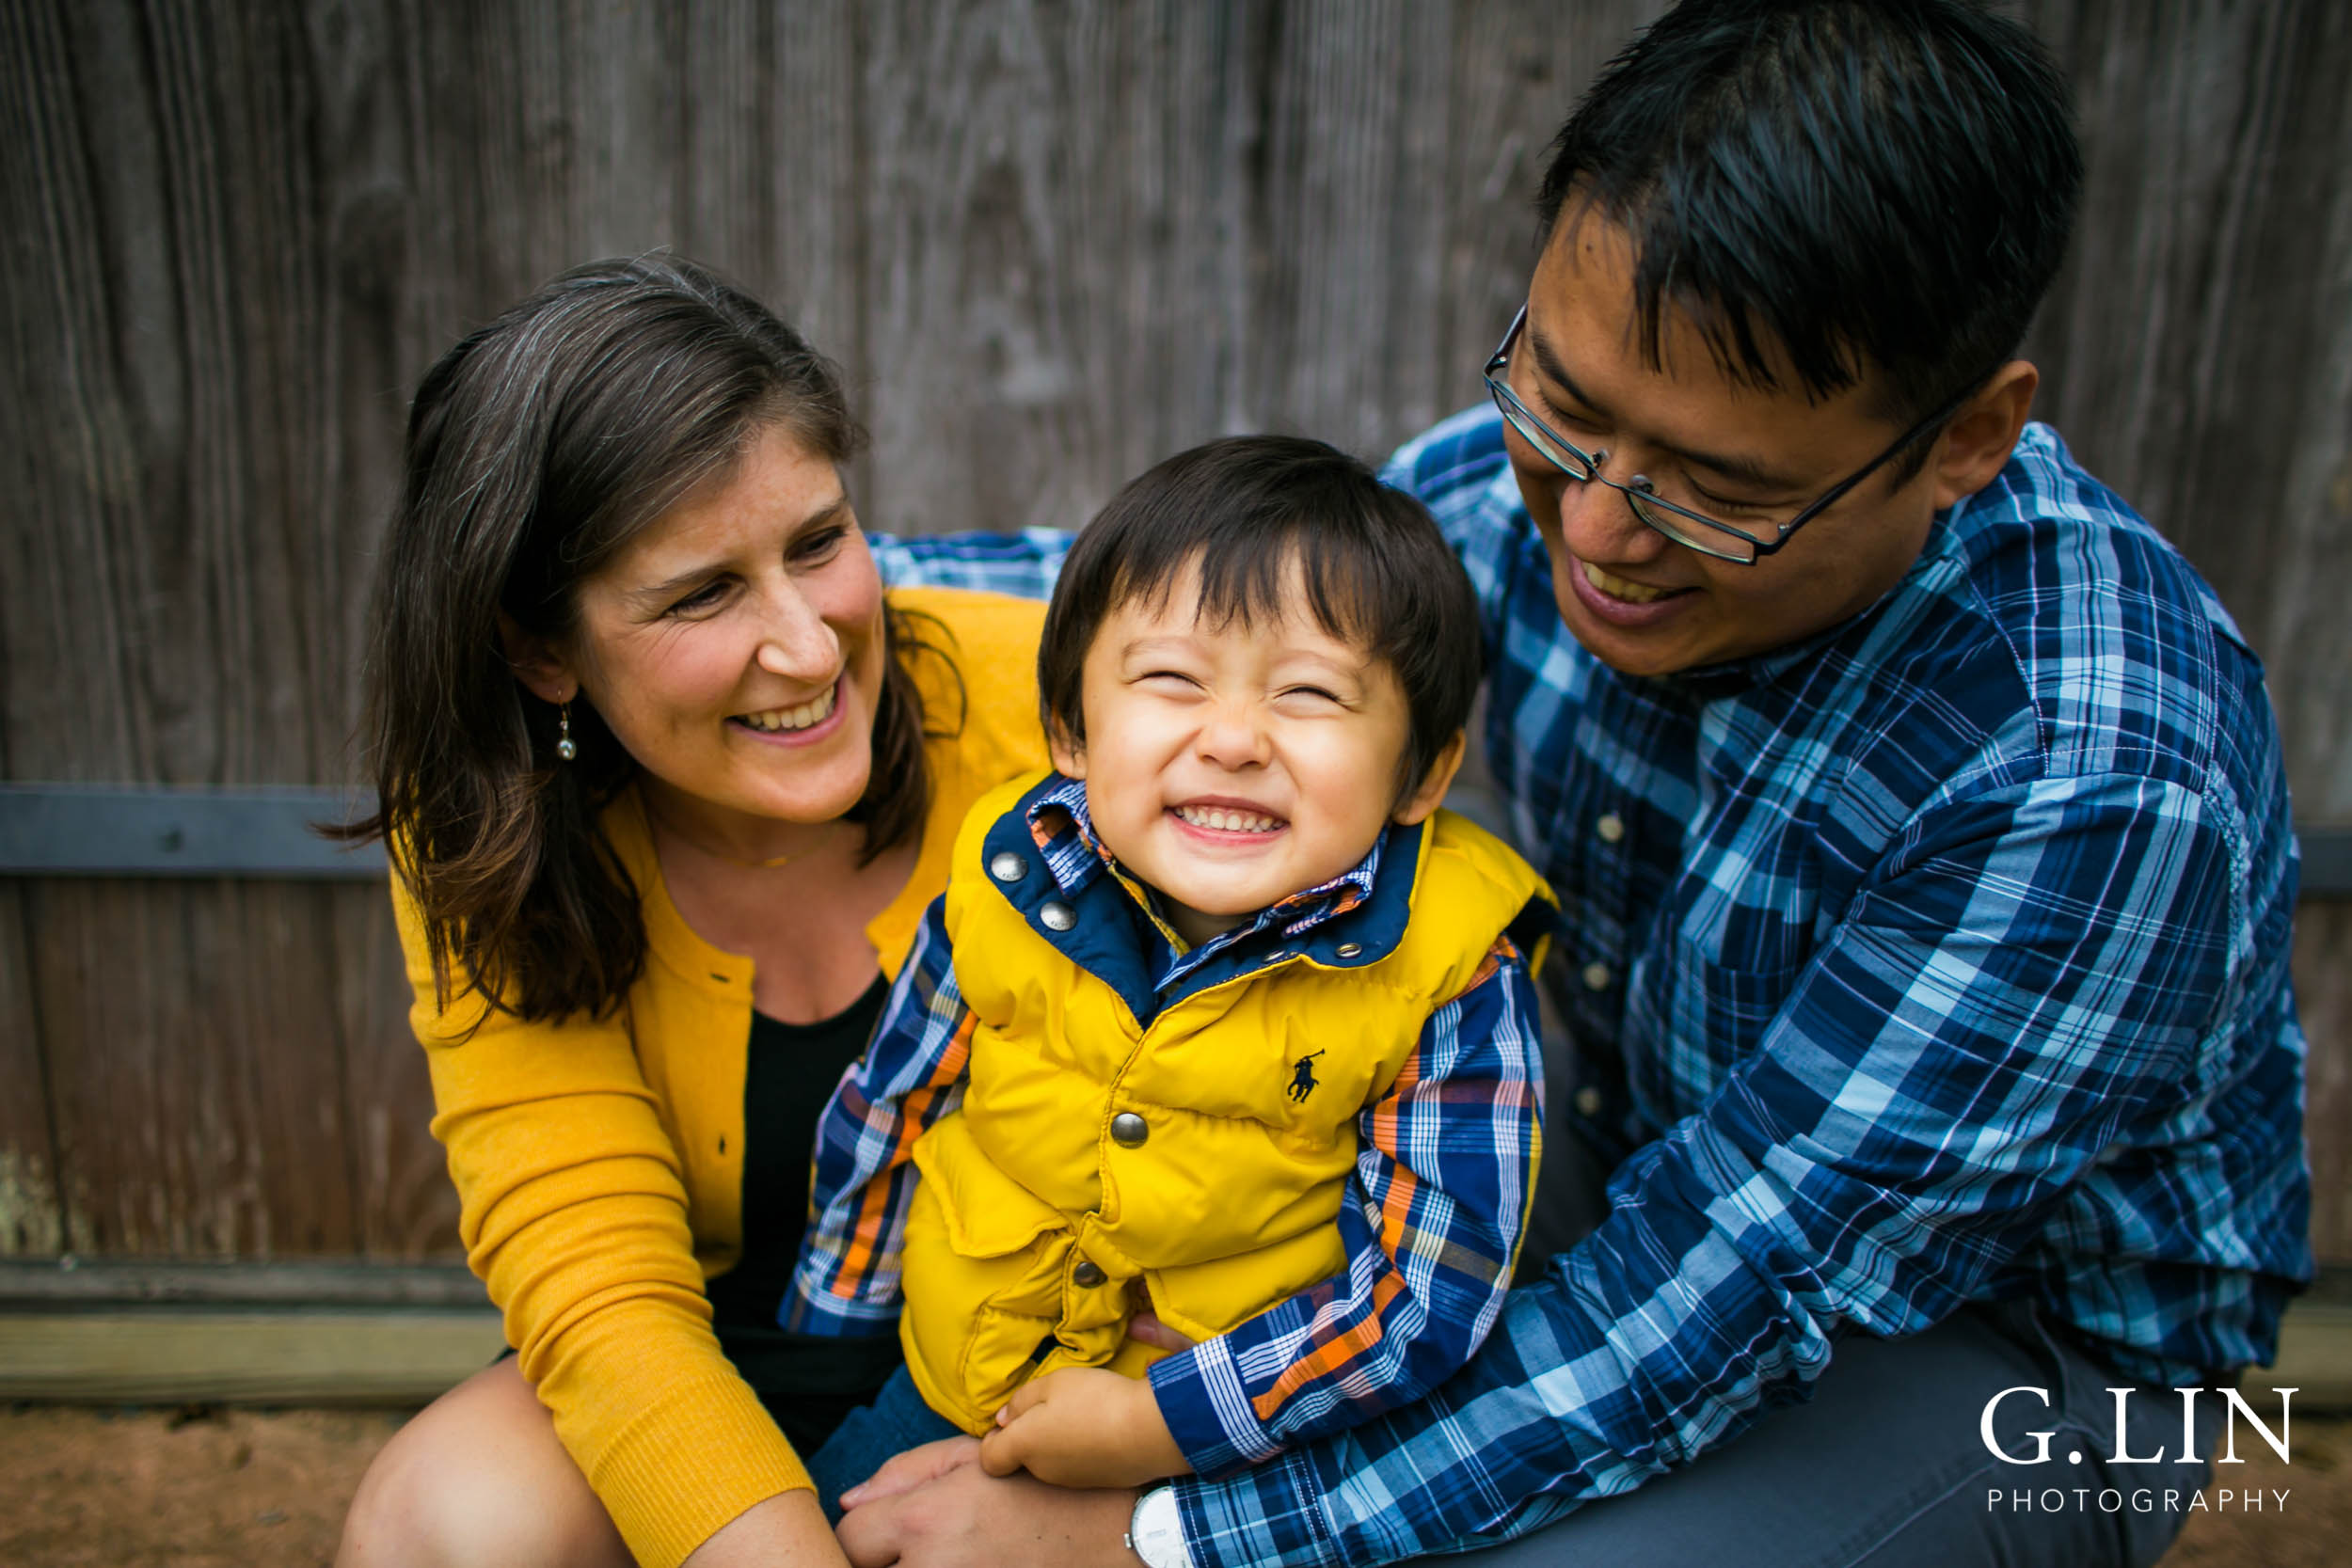 Durham Family Photography | G. Lin Photography | Family of 3 smiling